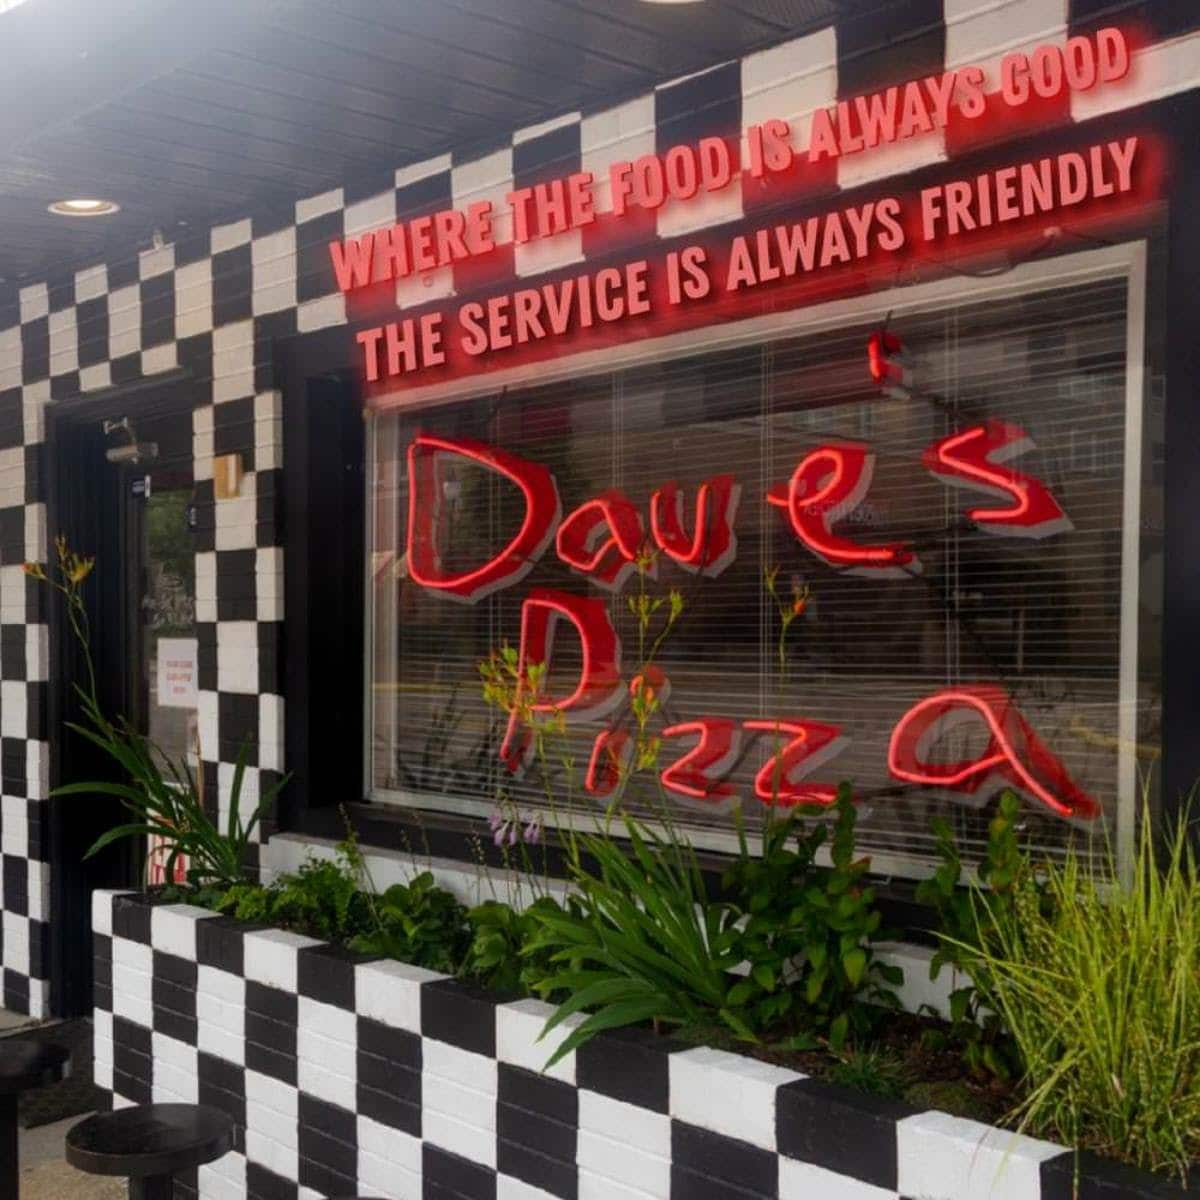 Paw Paw Patch, Dave's Pizza among establishments receiving 95 and above Food Service scores in January